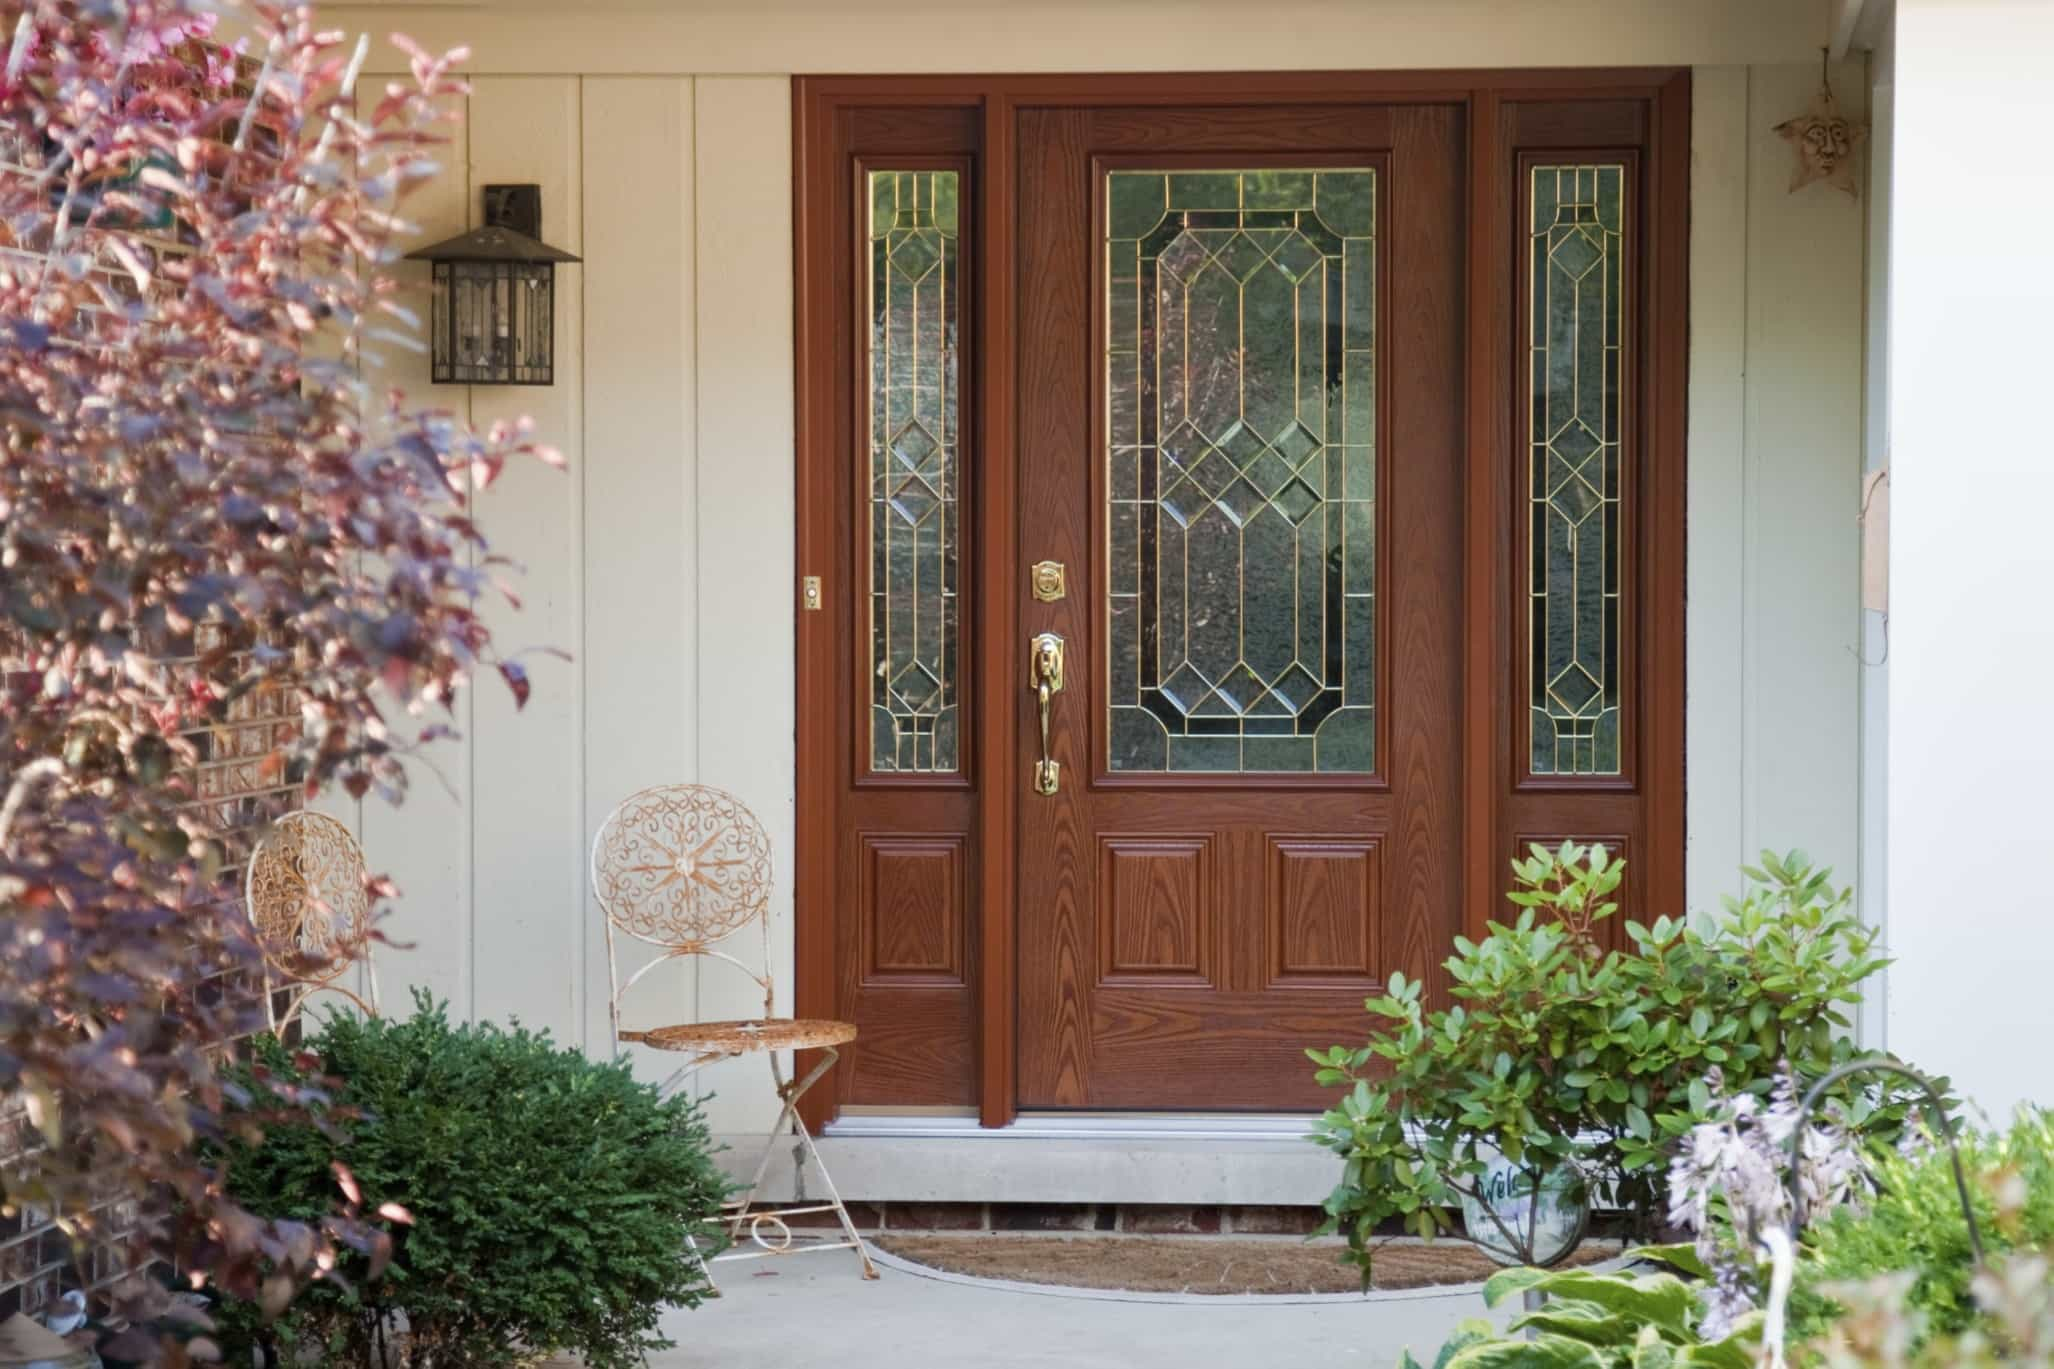 1369 #6B4131 Chicago's Best Fiberglass Entry Doors Sahara Window And Dors picture/photo Fibreglass Exterior Doors 41192054